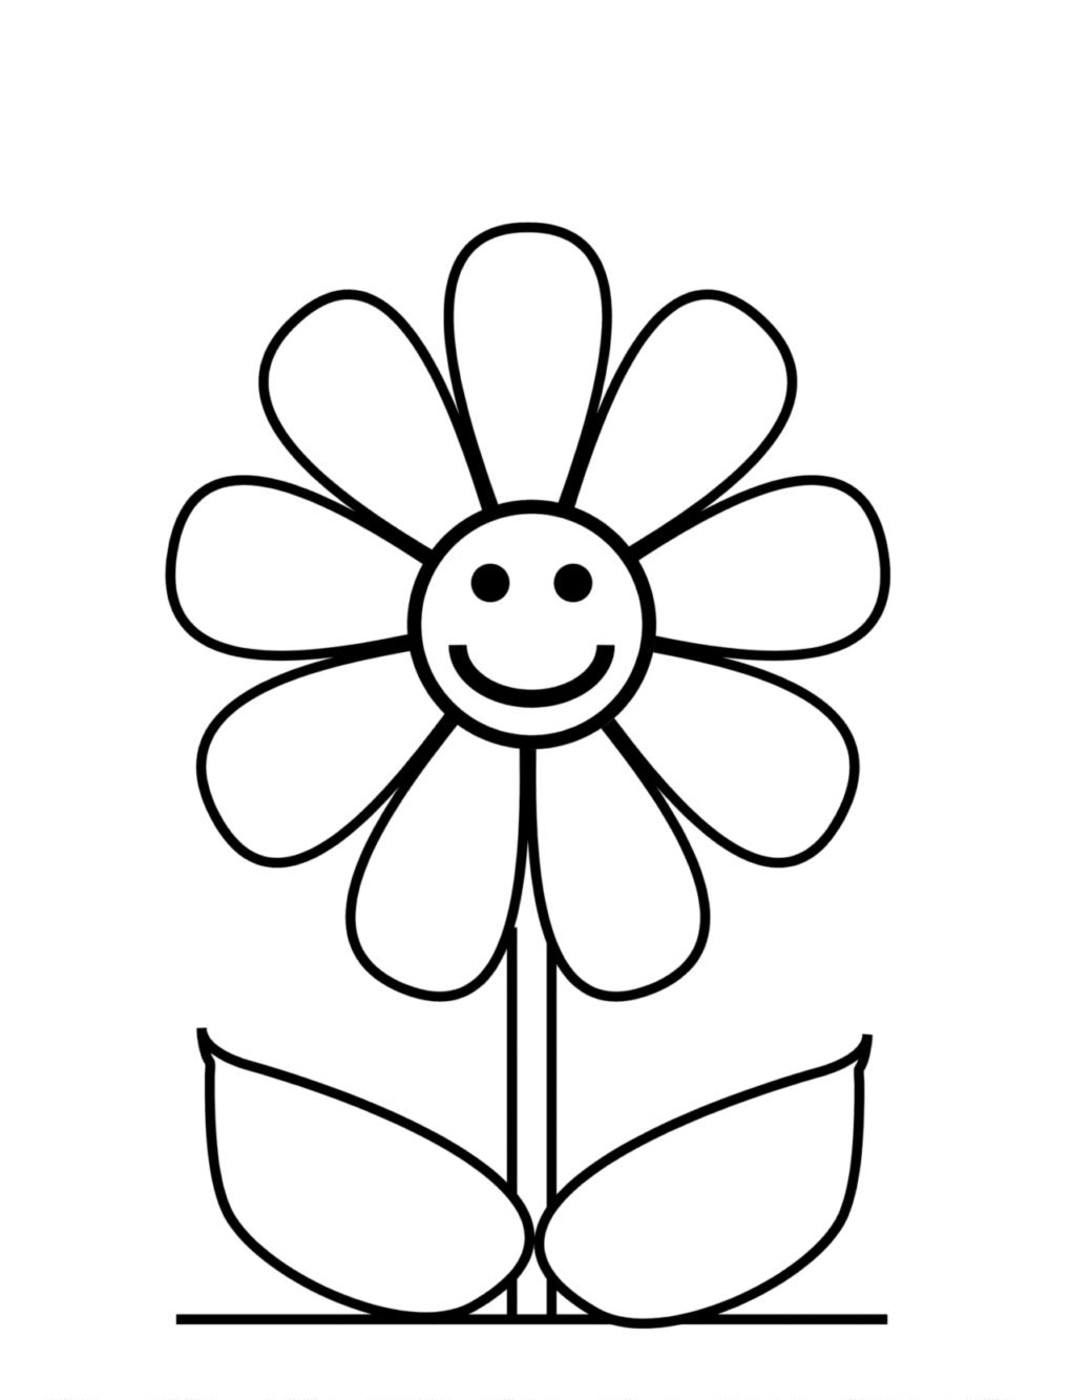 coloring outline images of flowers free flower outline for kids download free clip art free outline coloring of flowers images